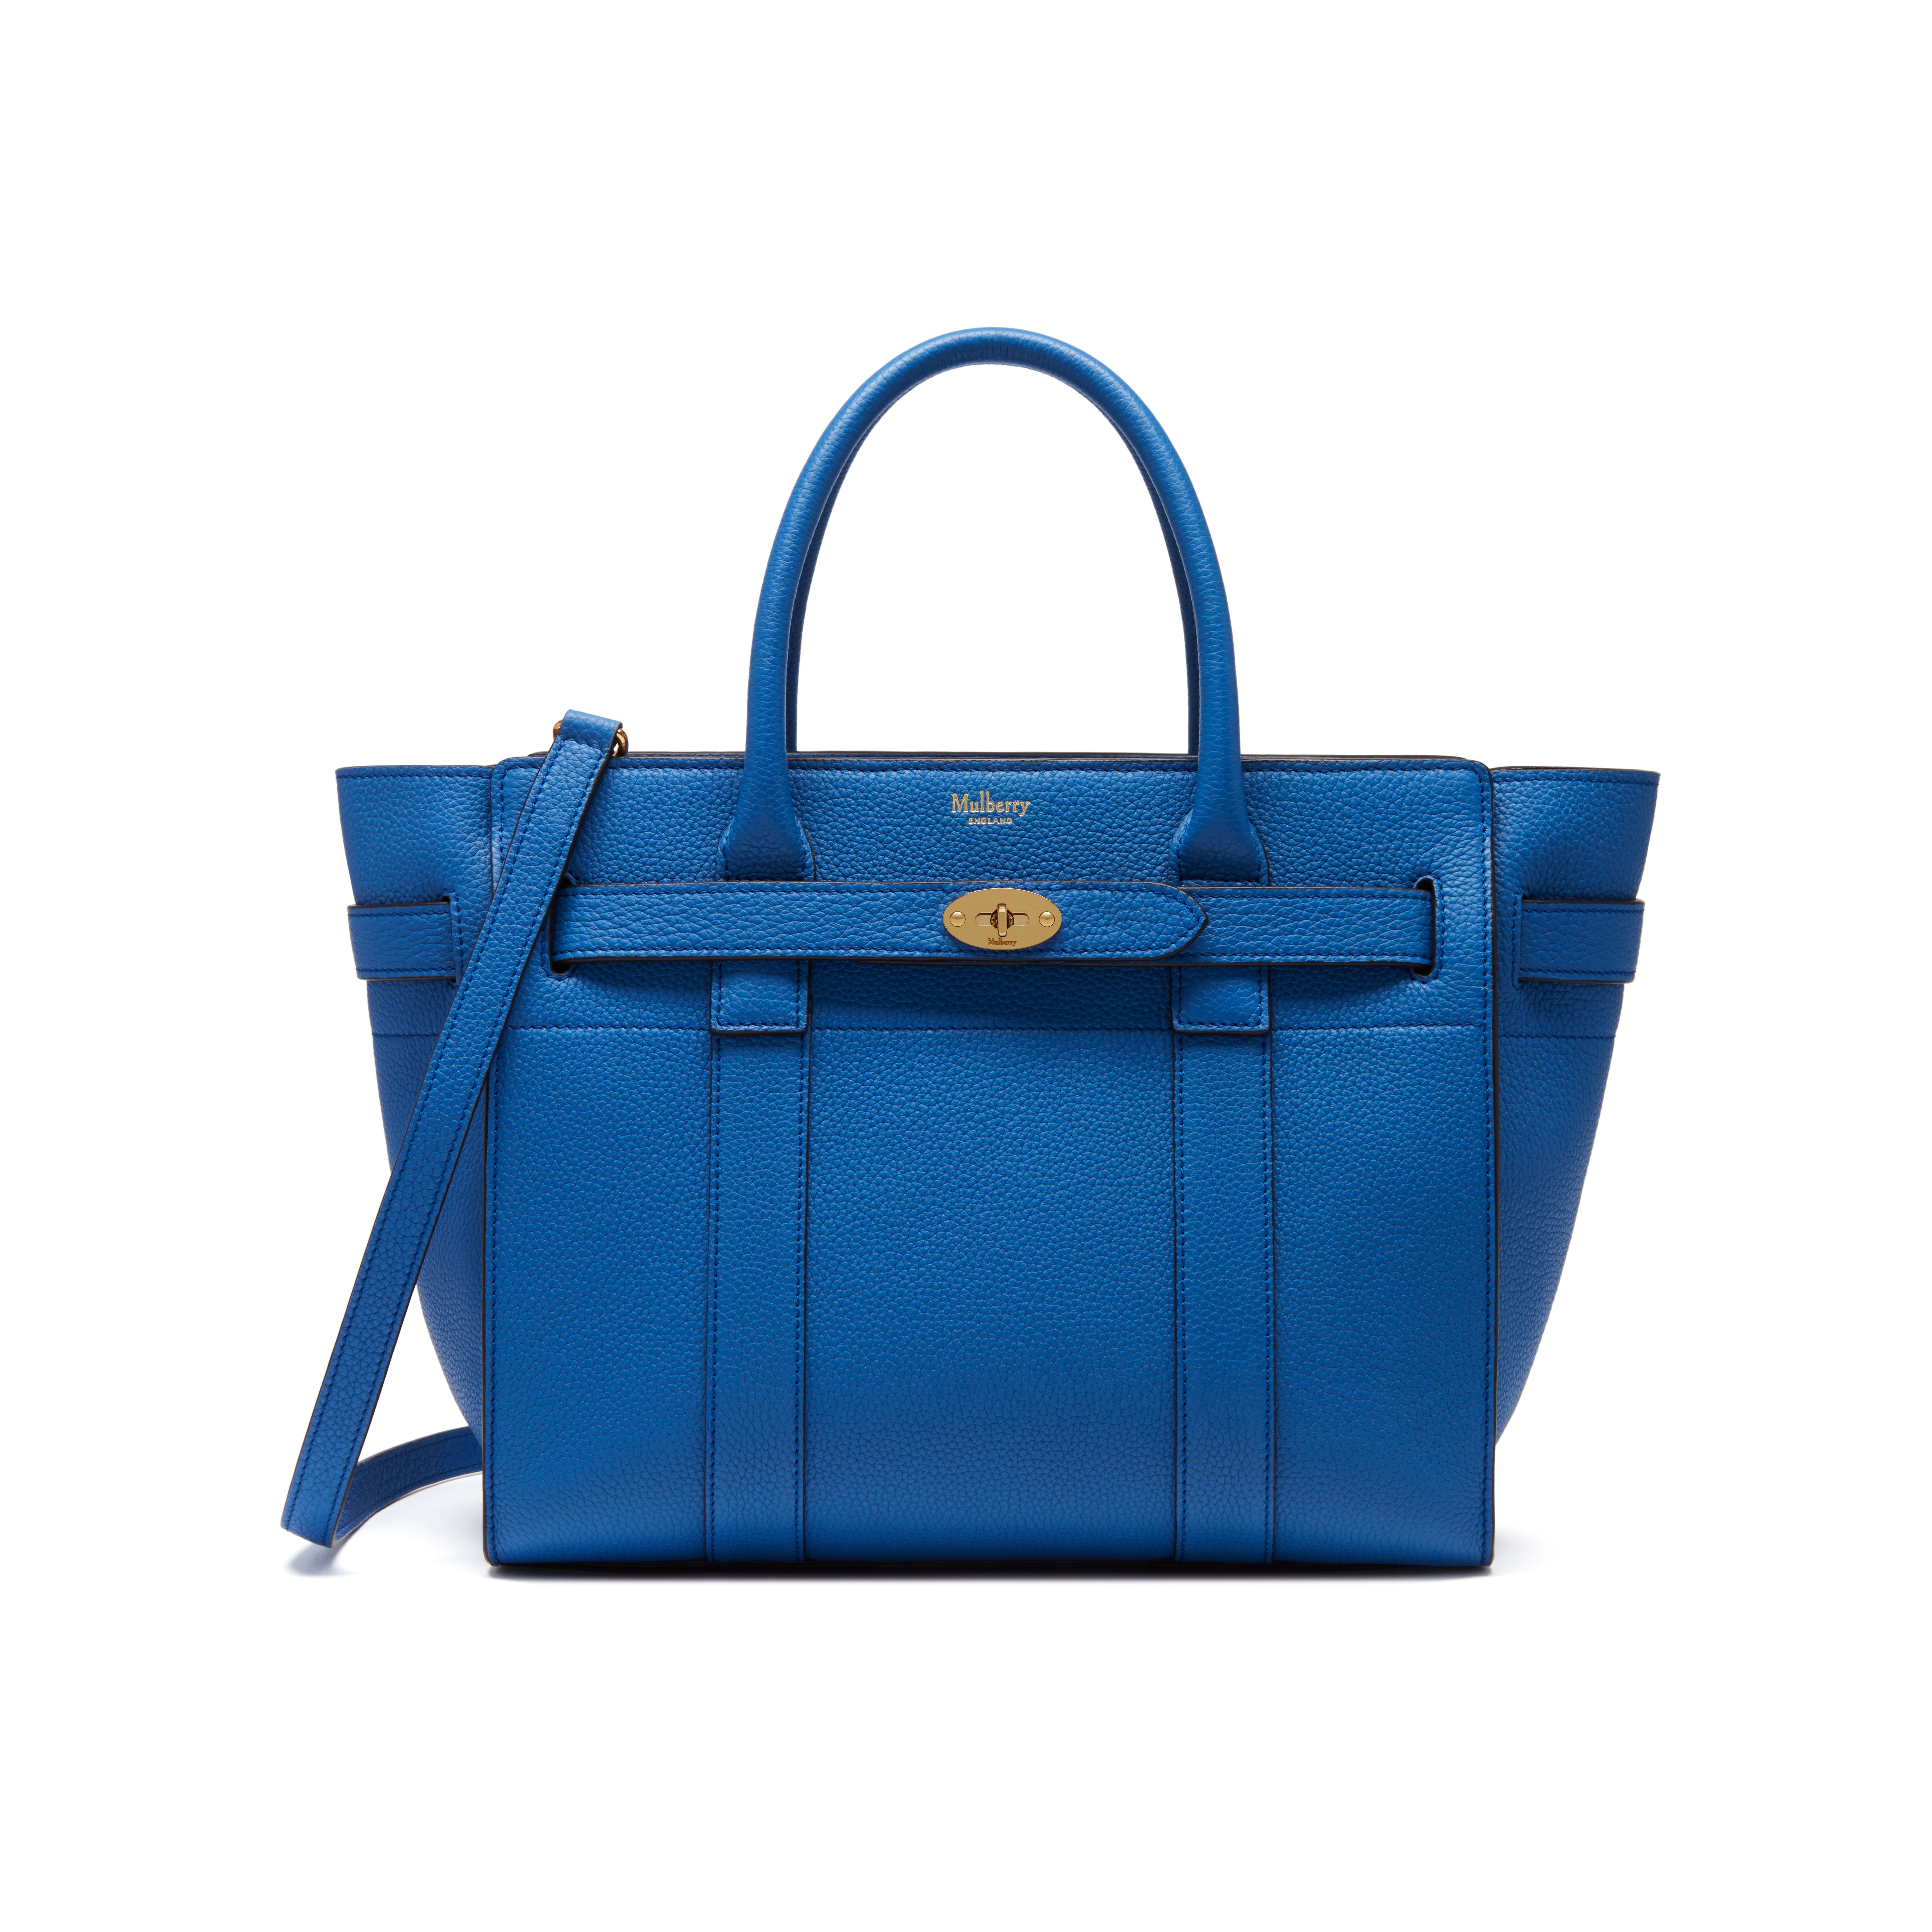 597c65b87156 Shop the Small Zipped Bayswater in Porcelain Blue Small Classic Grain  Leather at Mulberry.com. The Bayswater is our most iconic bag